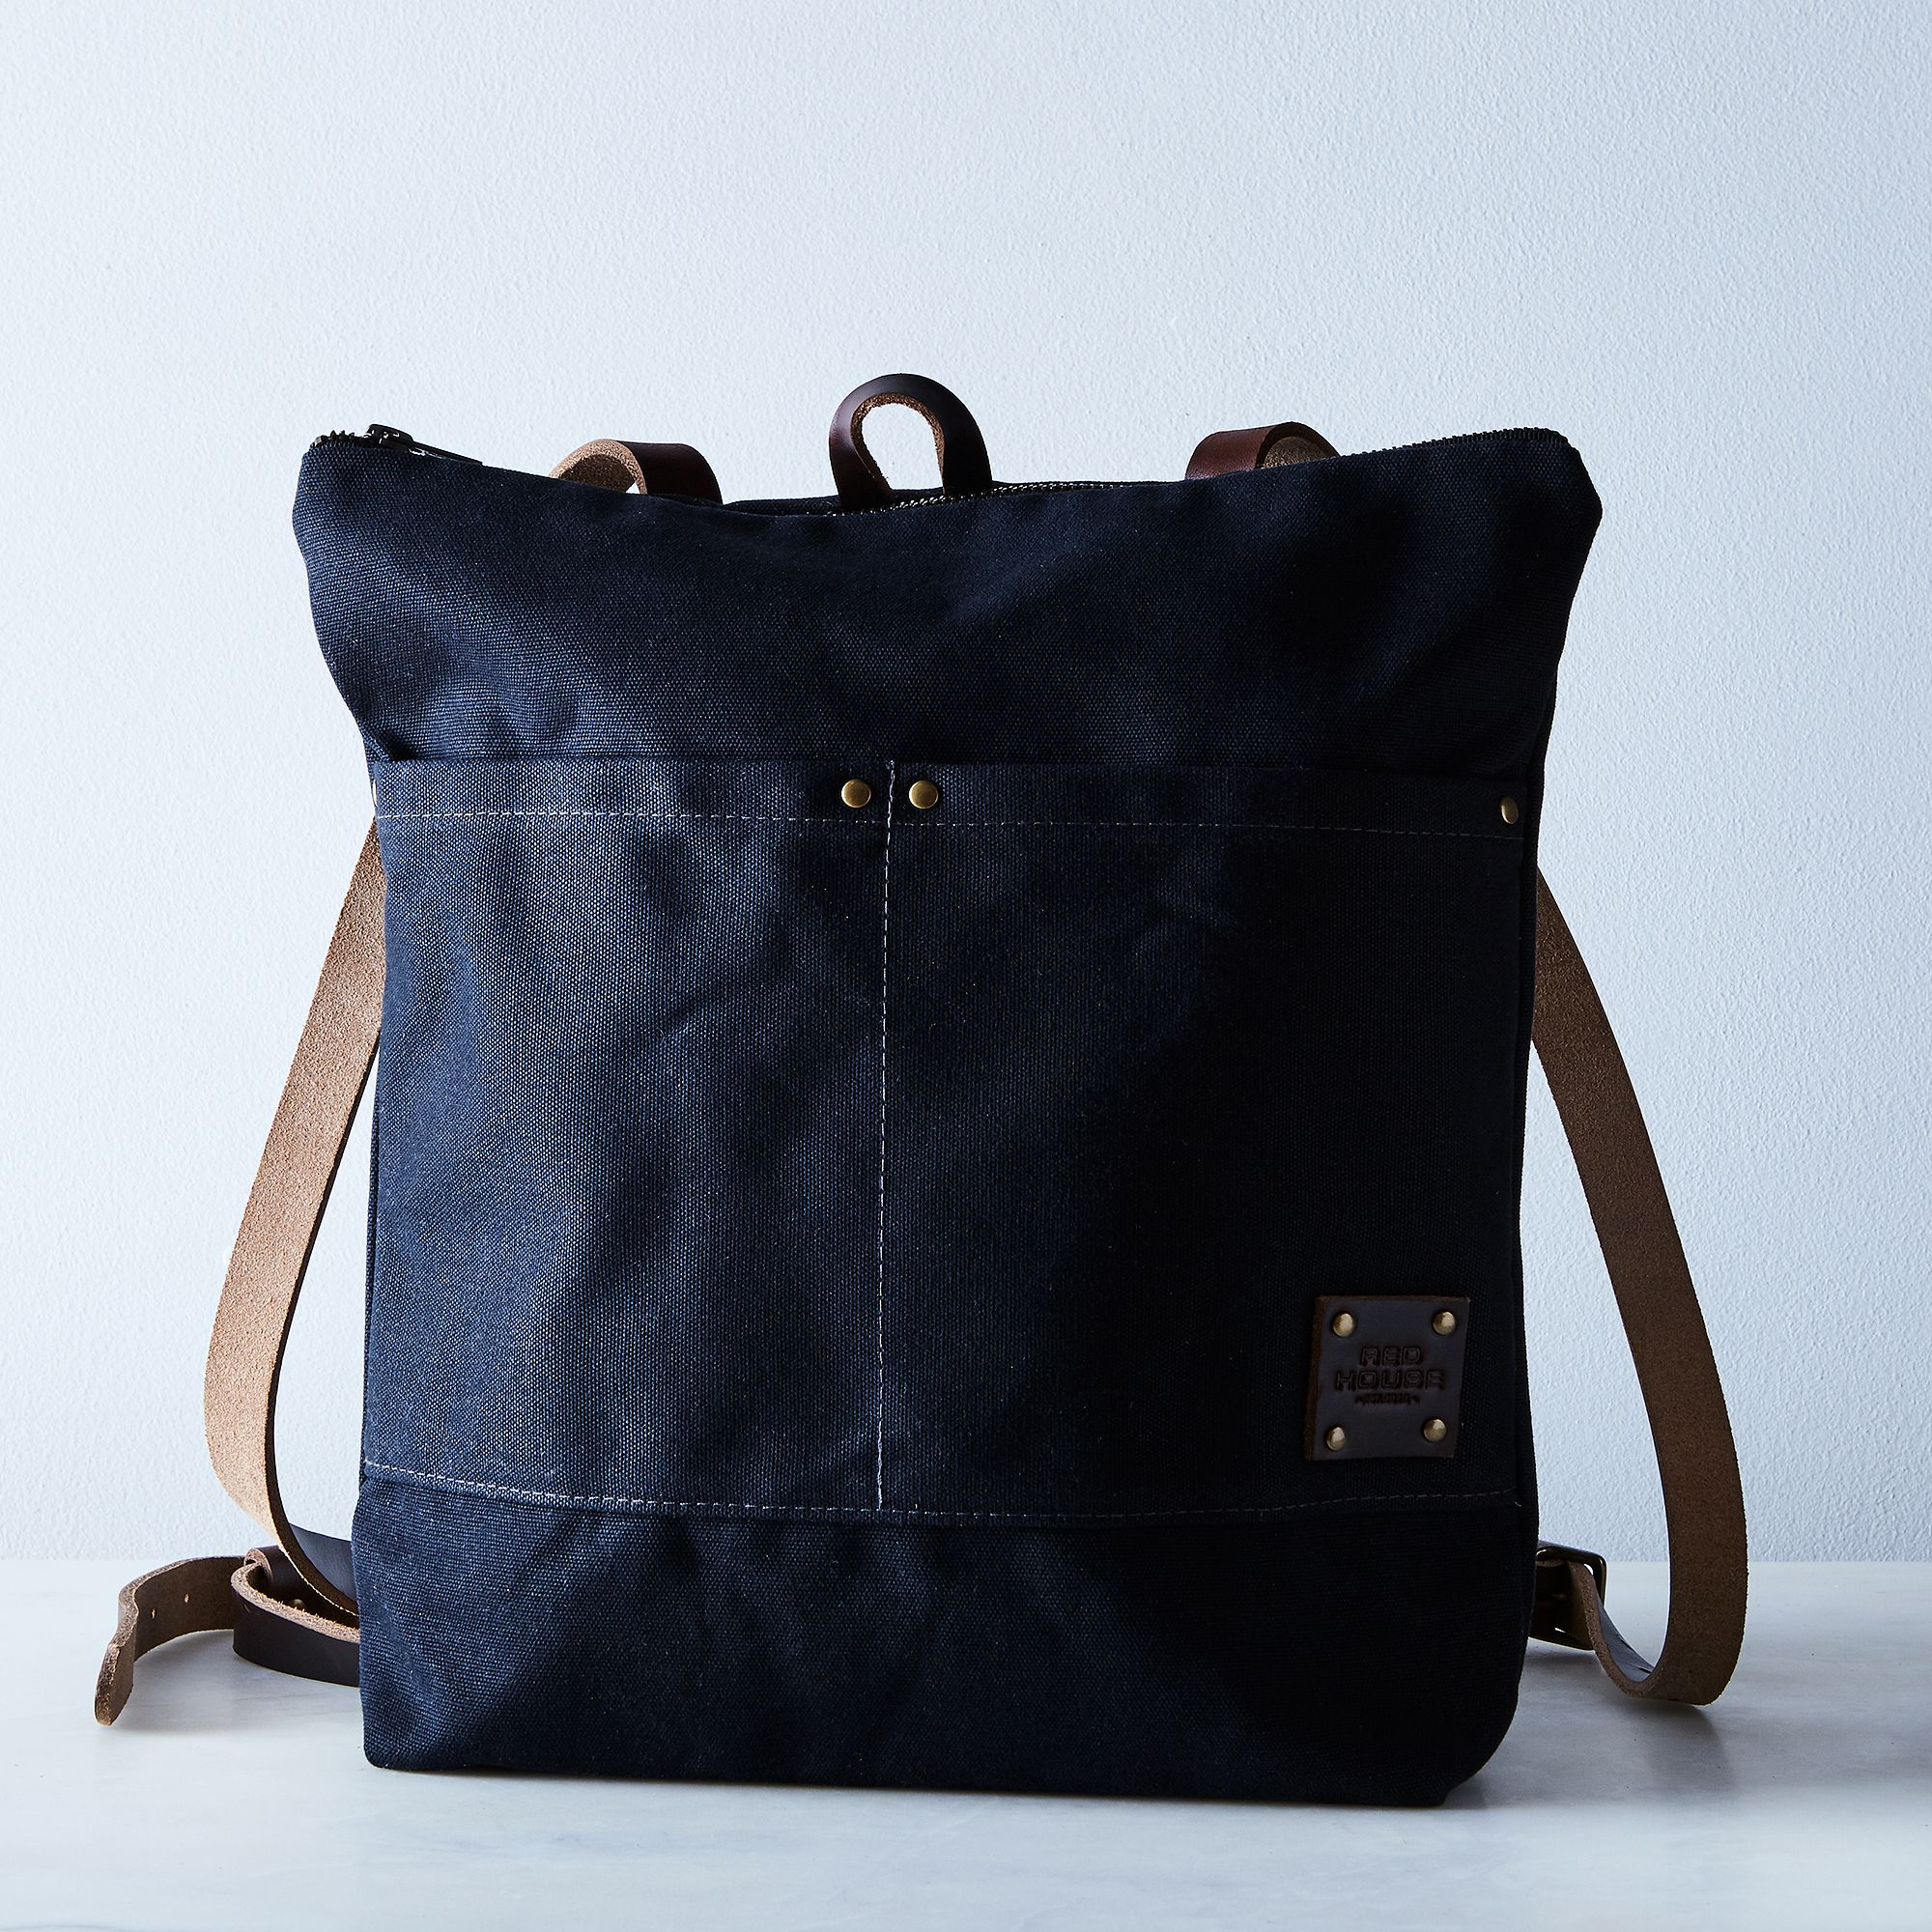 6342397b 7e58 4d96 b599 6d9882431225  2017 0719 red house waxed canvas backpack black silo rocky luten 010